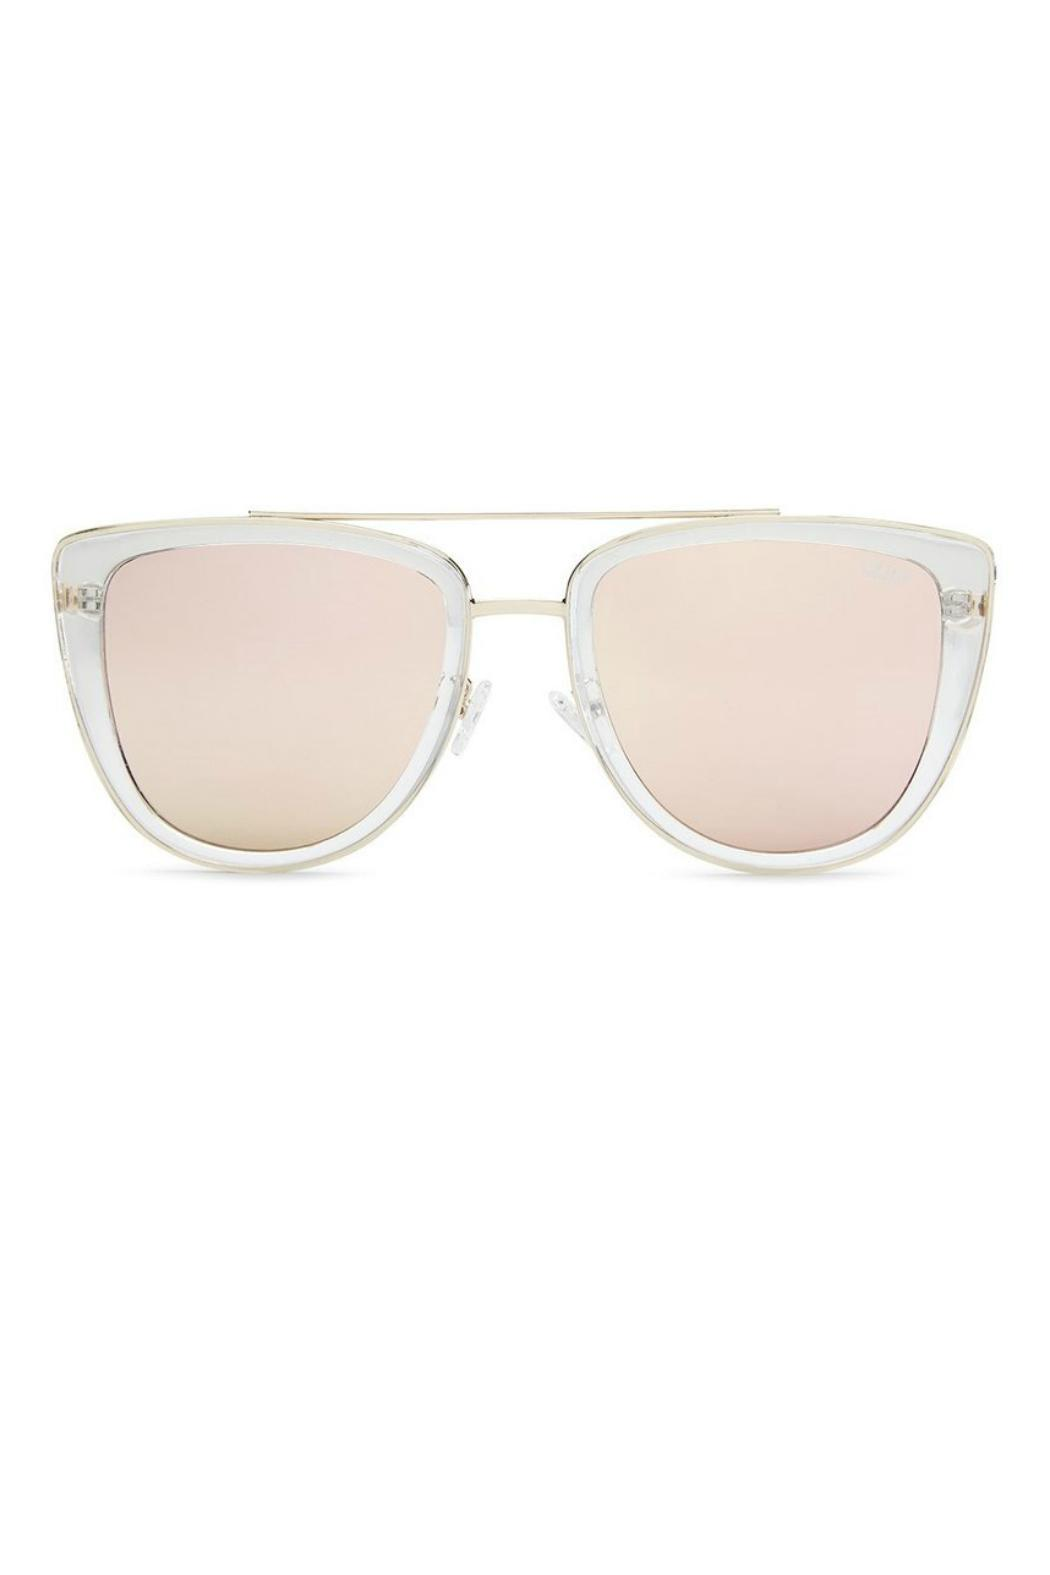 Quay Australia French Kiss Sunnies - Front Cropped Image